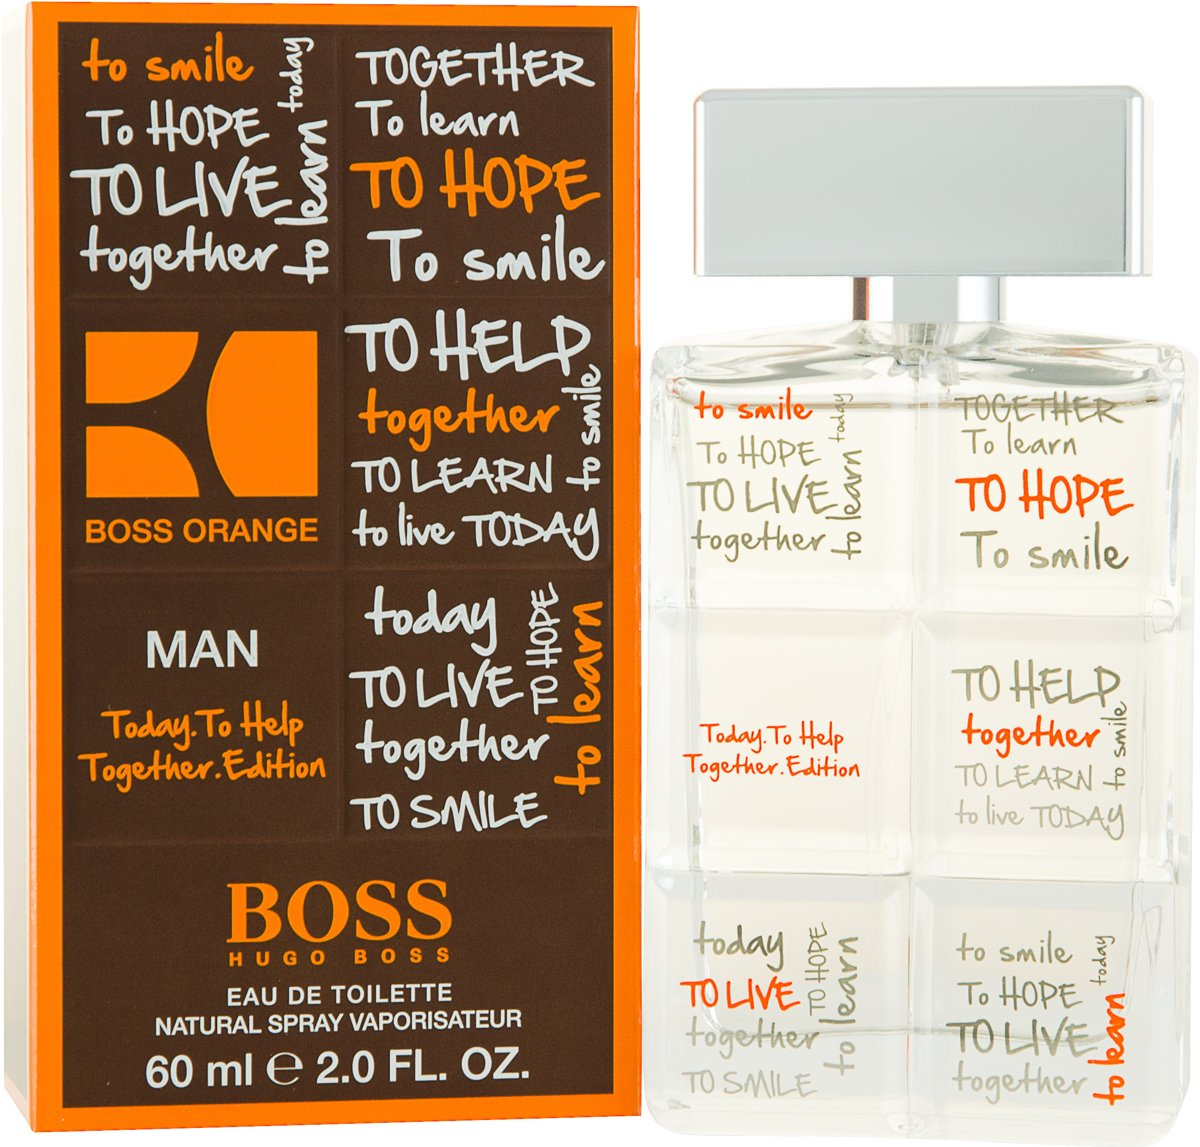 Hugo Boss Orange Limited Edition for Men - 60 ml - Eau de toilette